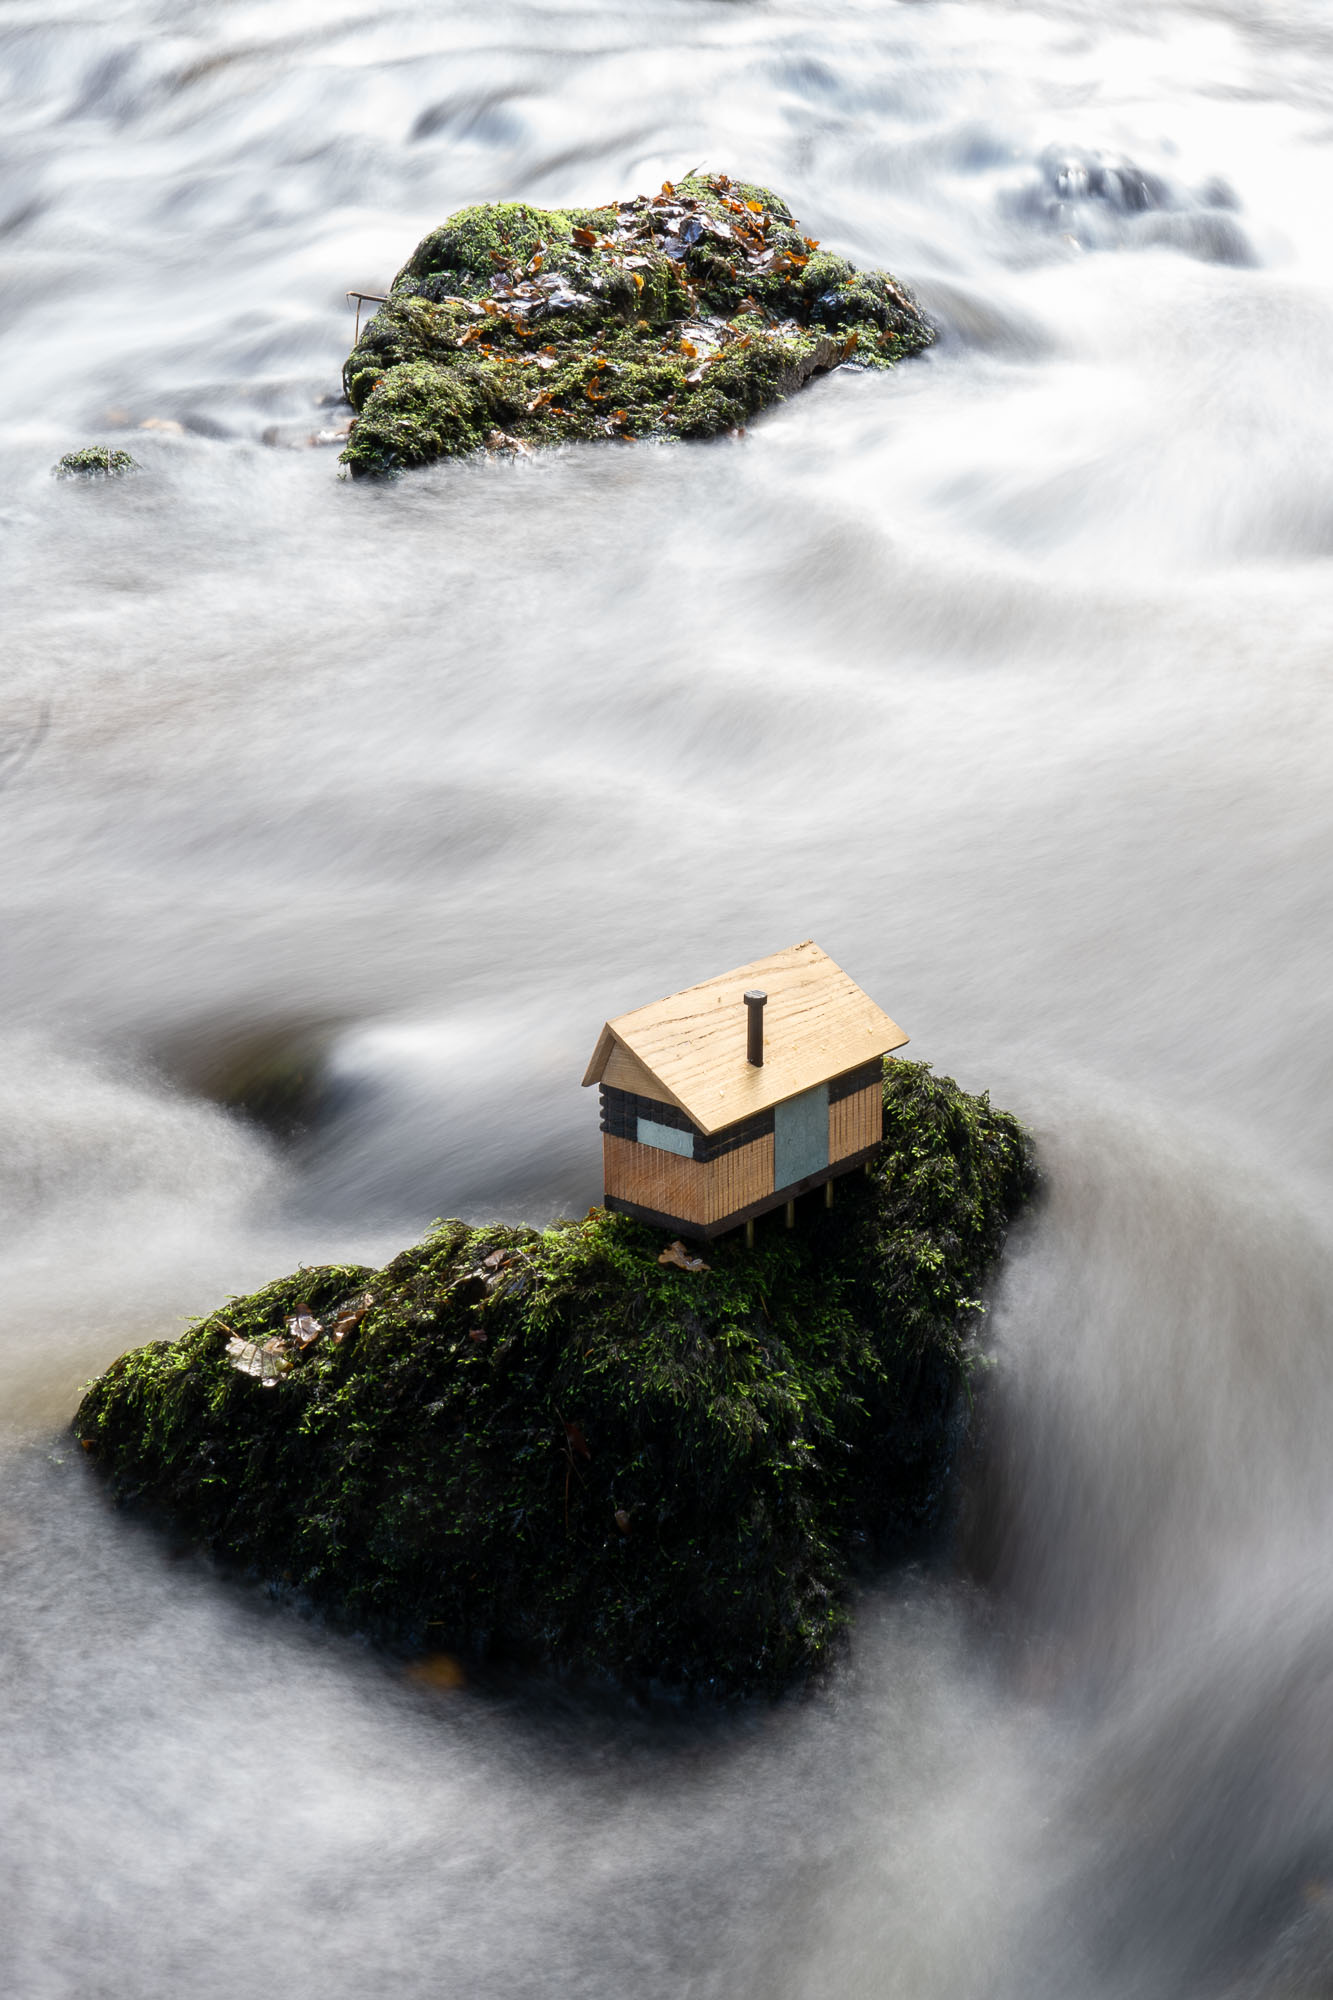 cabin model on a rock in a dartmoor river